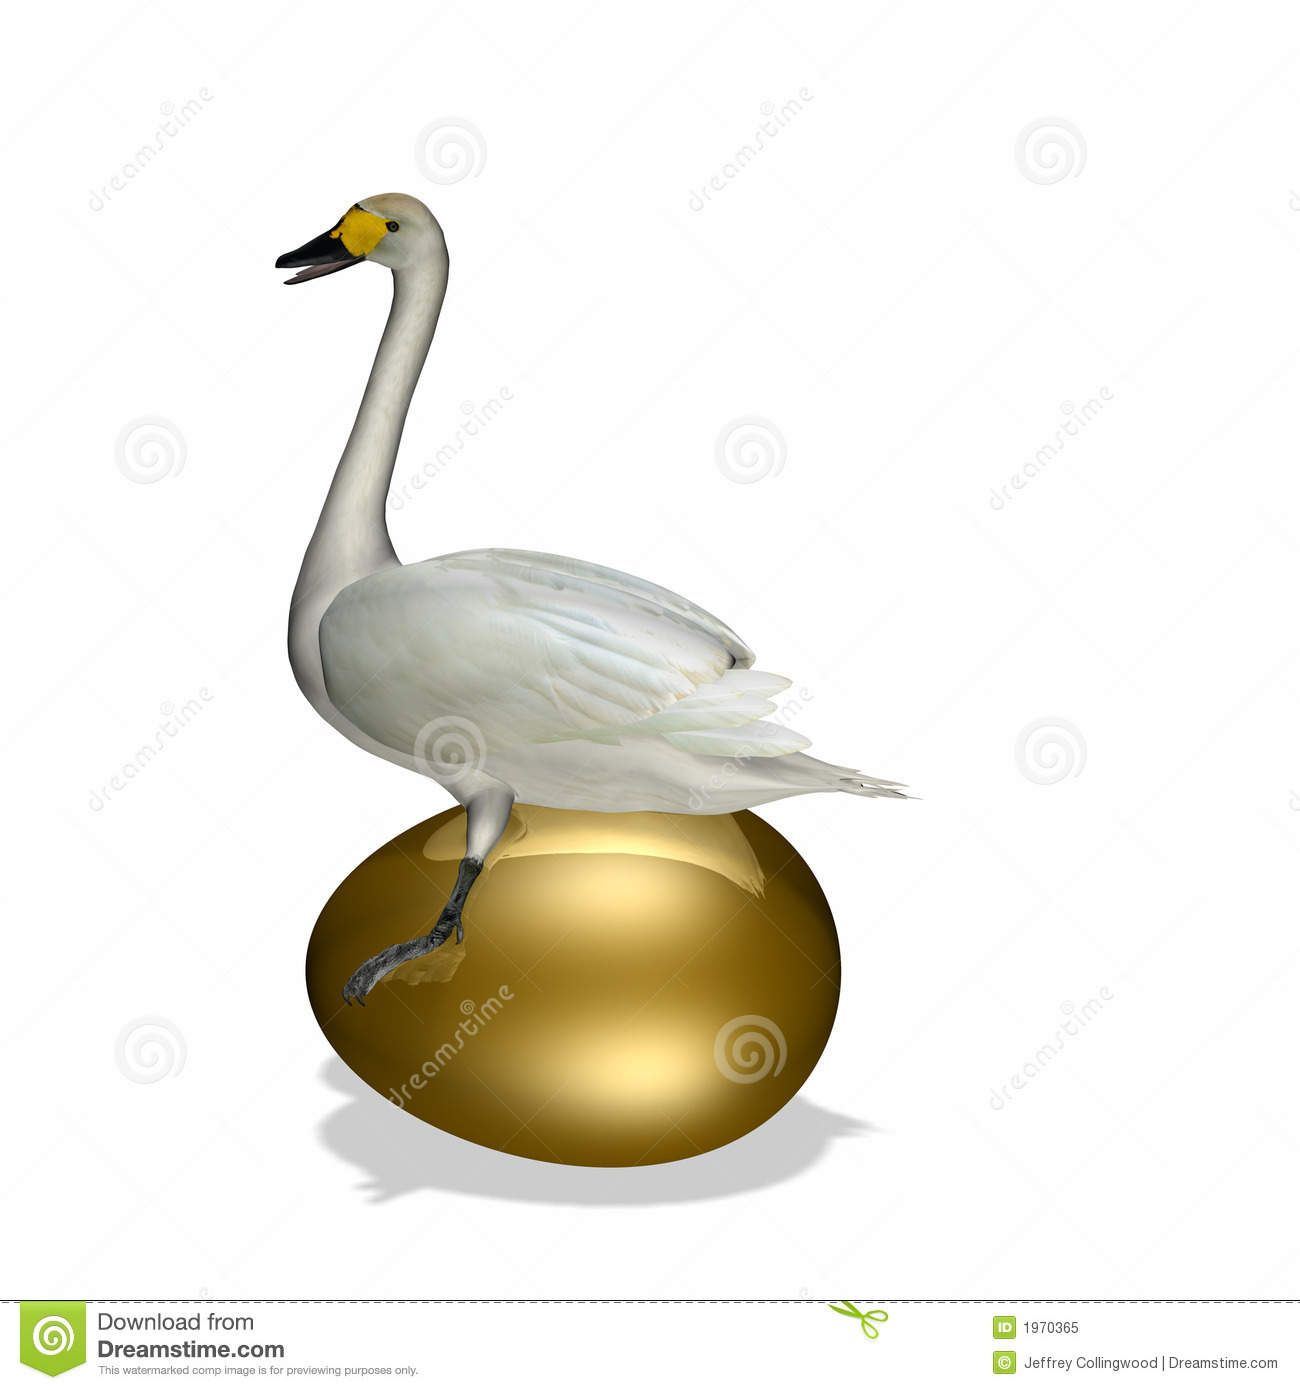 moreover B Bcfa Ab Dd E Ea E D D Cd Fc C Hq likewise Bluebird Recent Hatchlings Egg A furthermore Bdmimd Baltimore Running Festival in addition Dsc X. on ugly duckling to swan